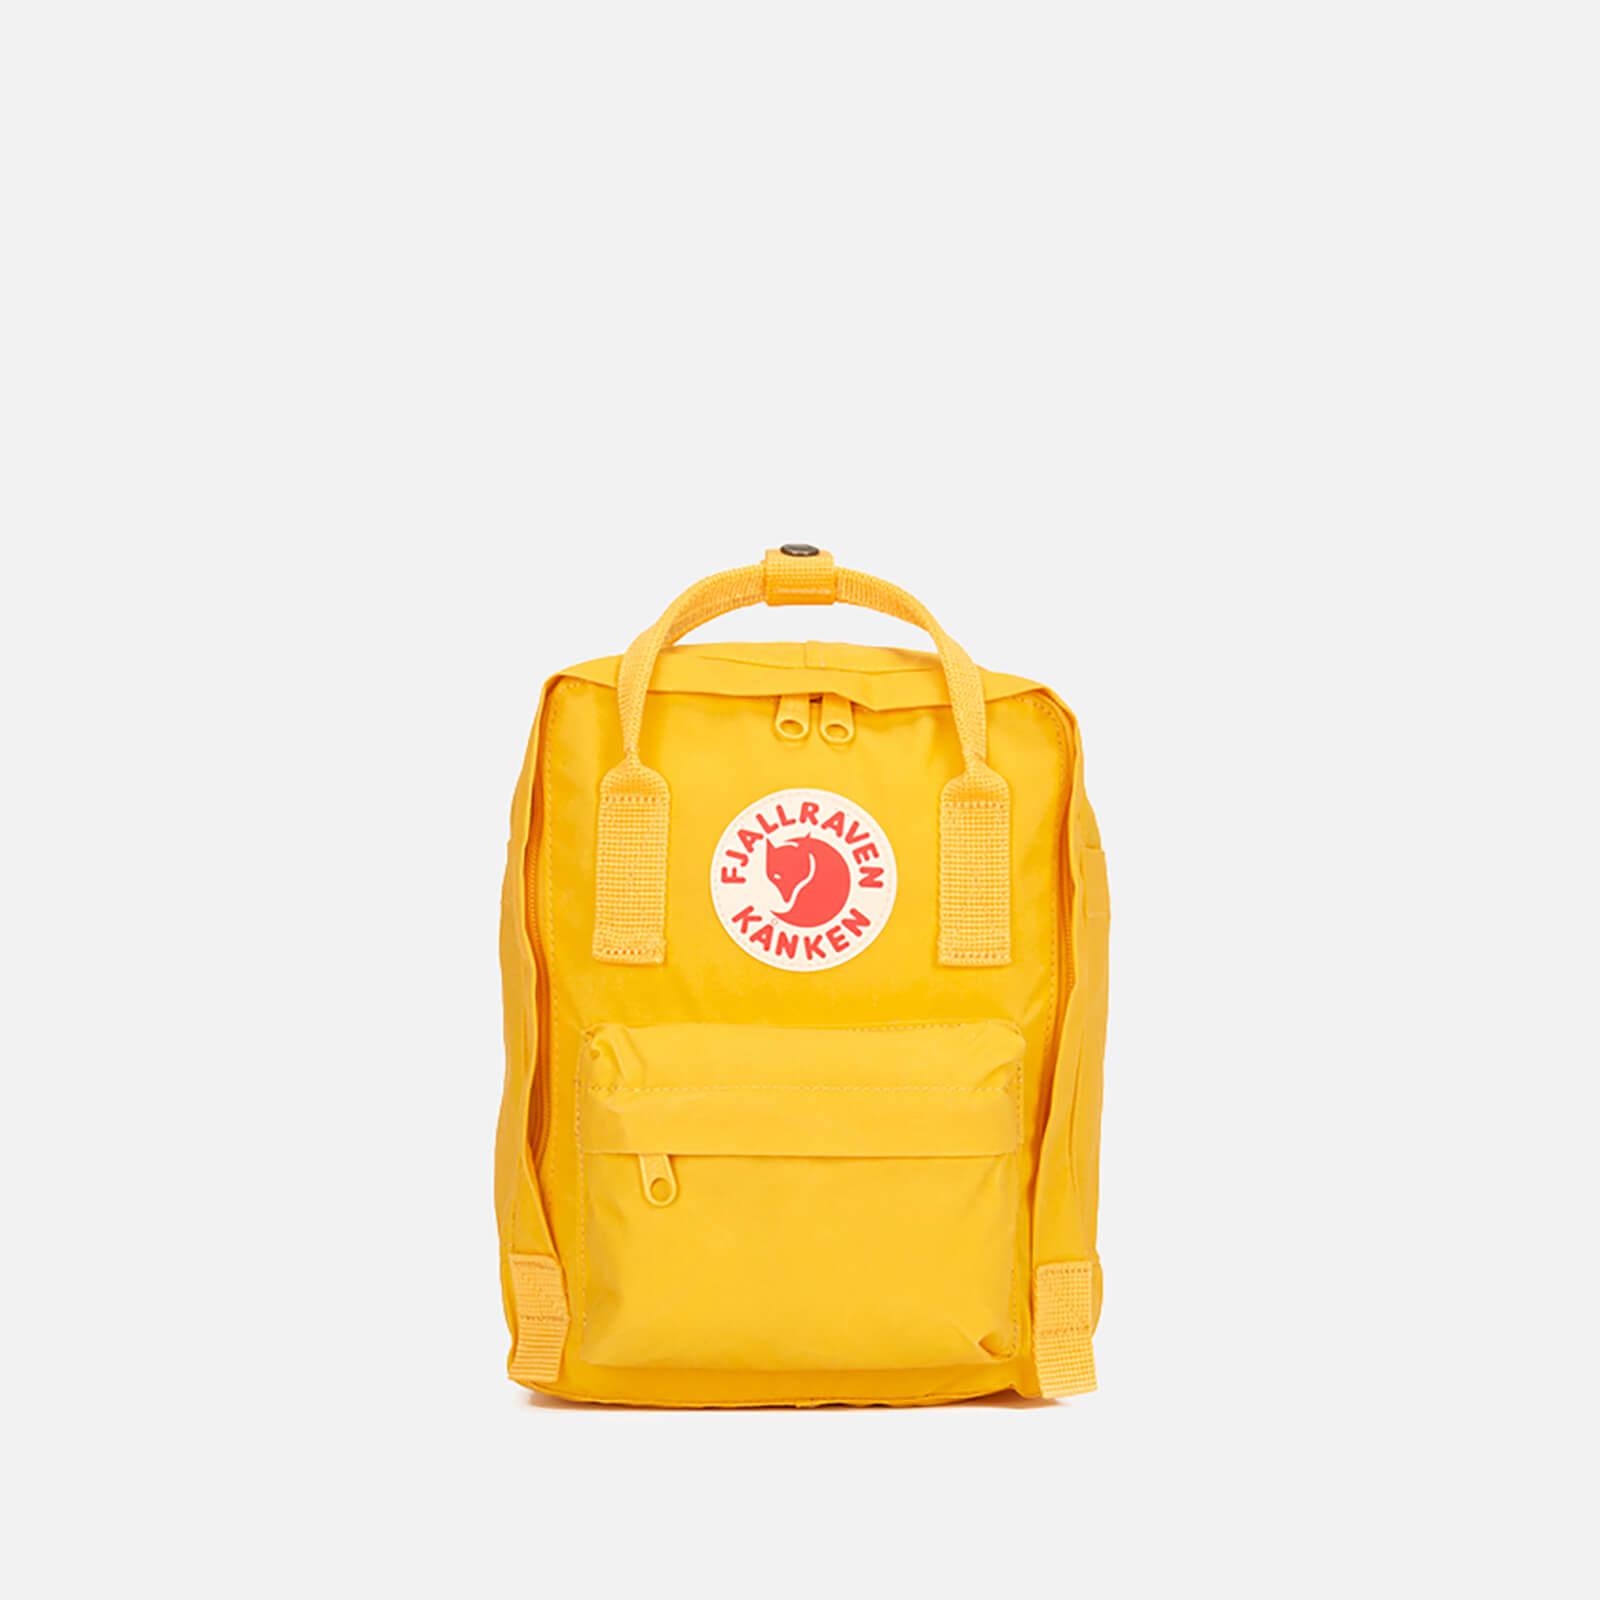 a654a14334 Fjallraven Kanken Mini Backpack - Warm Yellow - Free UK Delivery over £50